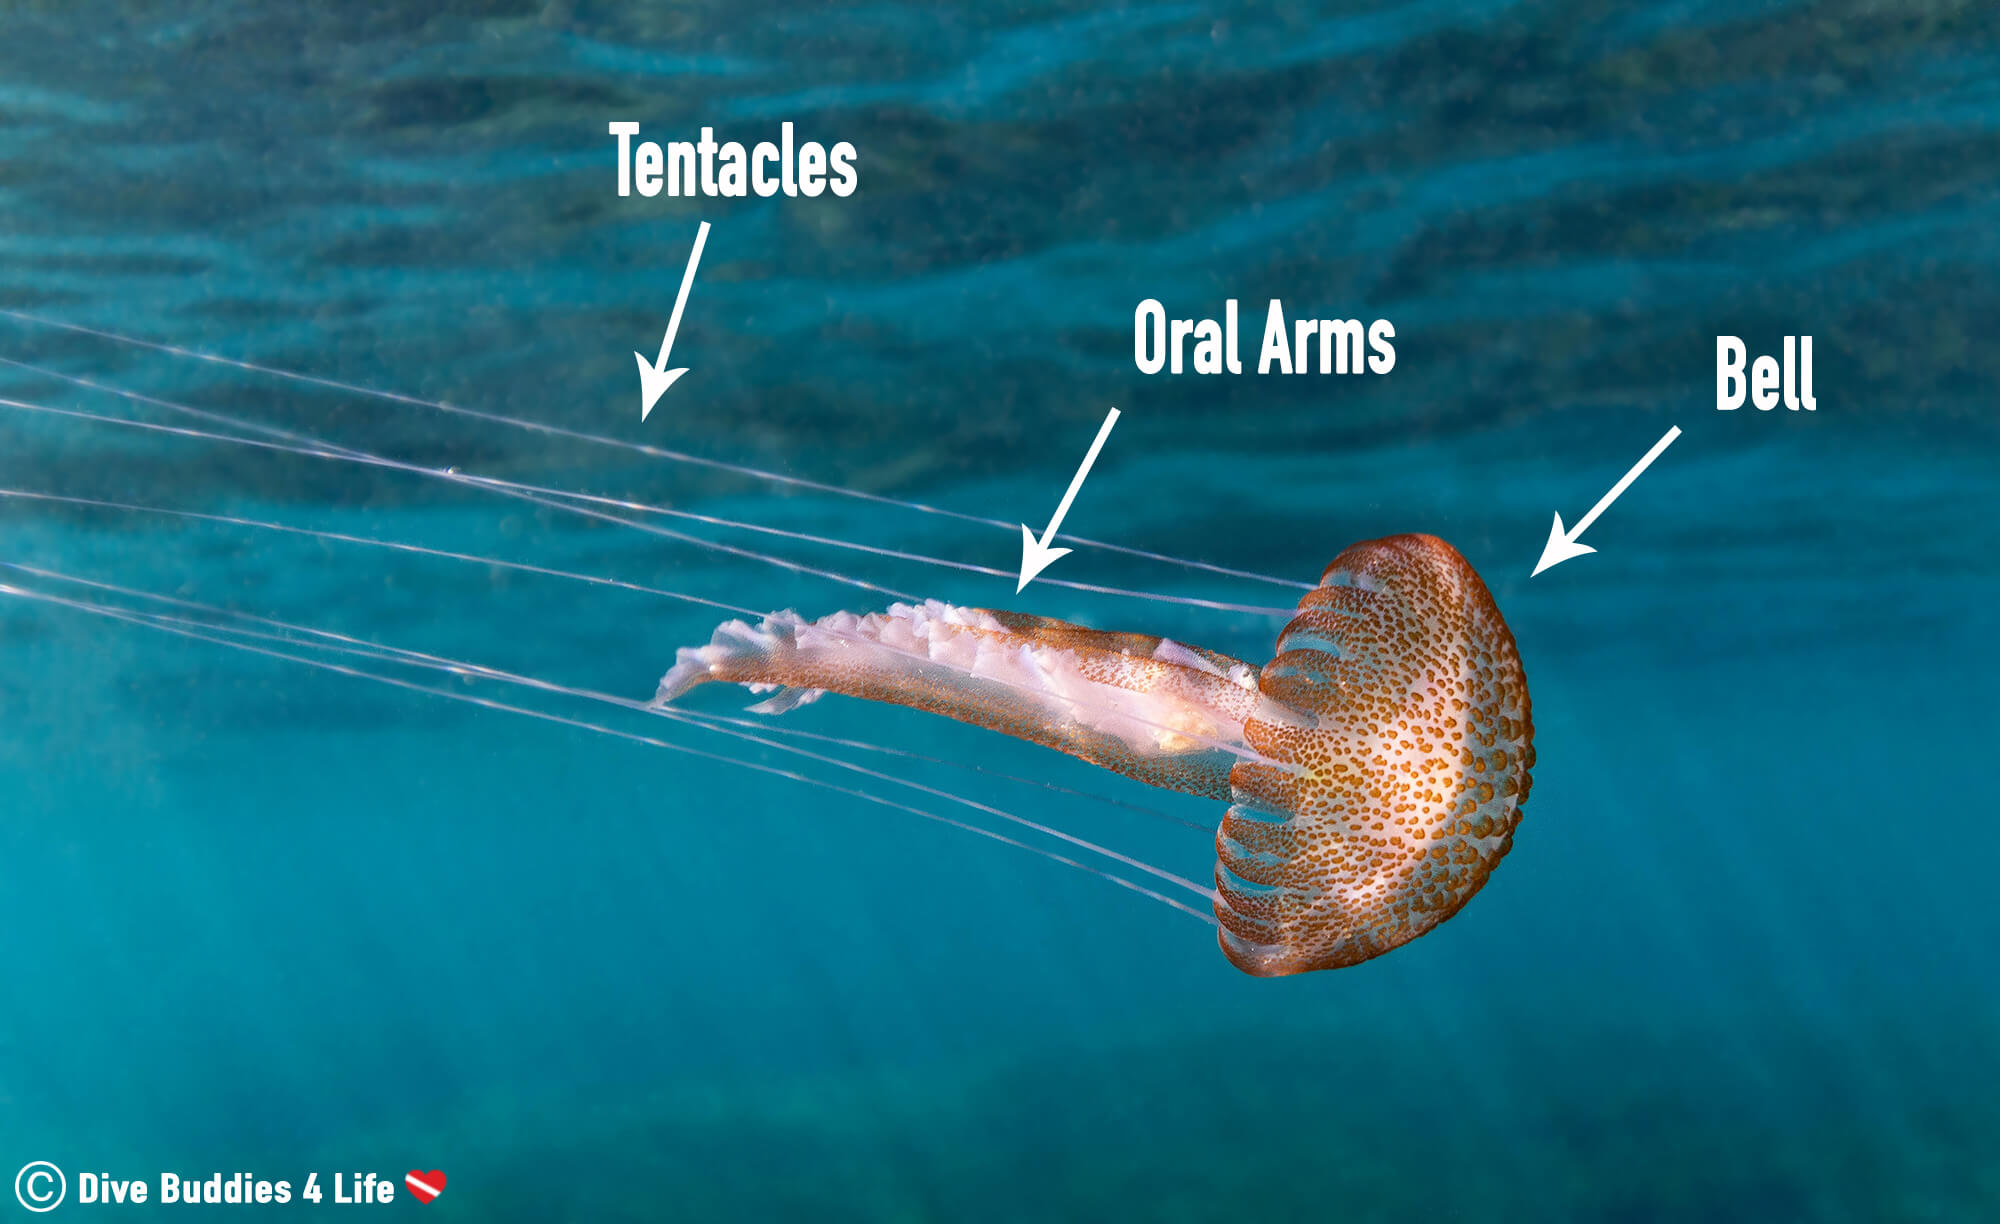 A Break Down Of The Jellyfish Body Into Bell, Oral Arms And Tentacles